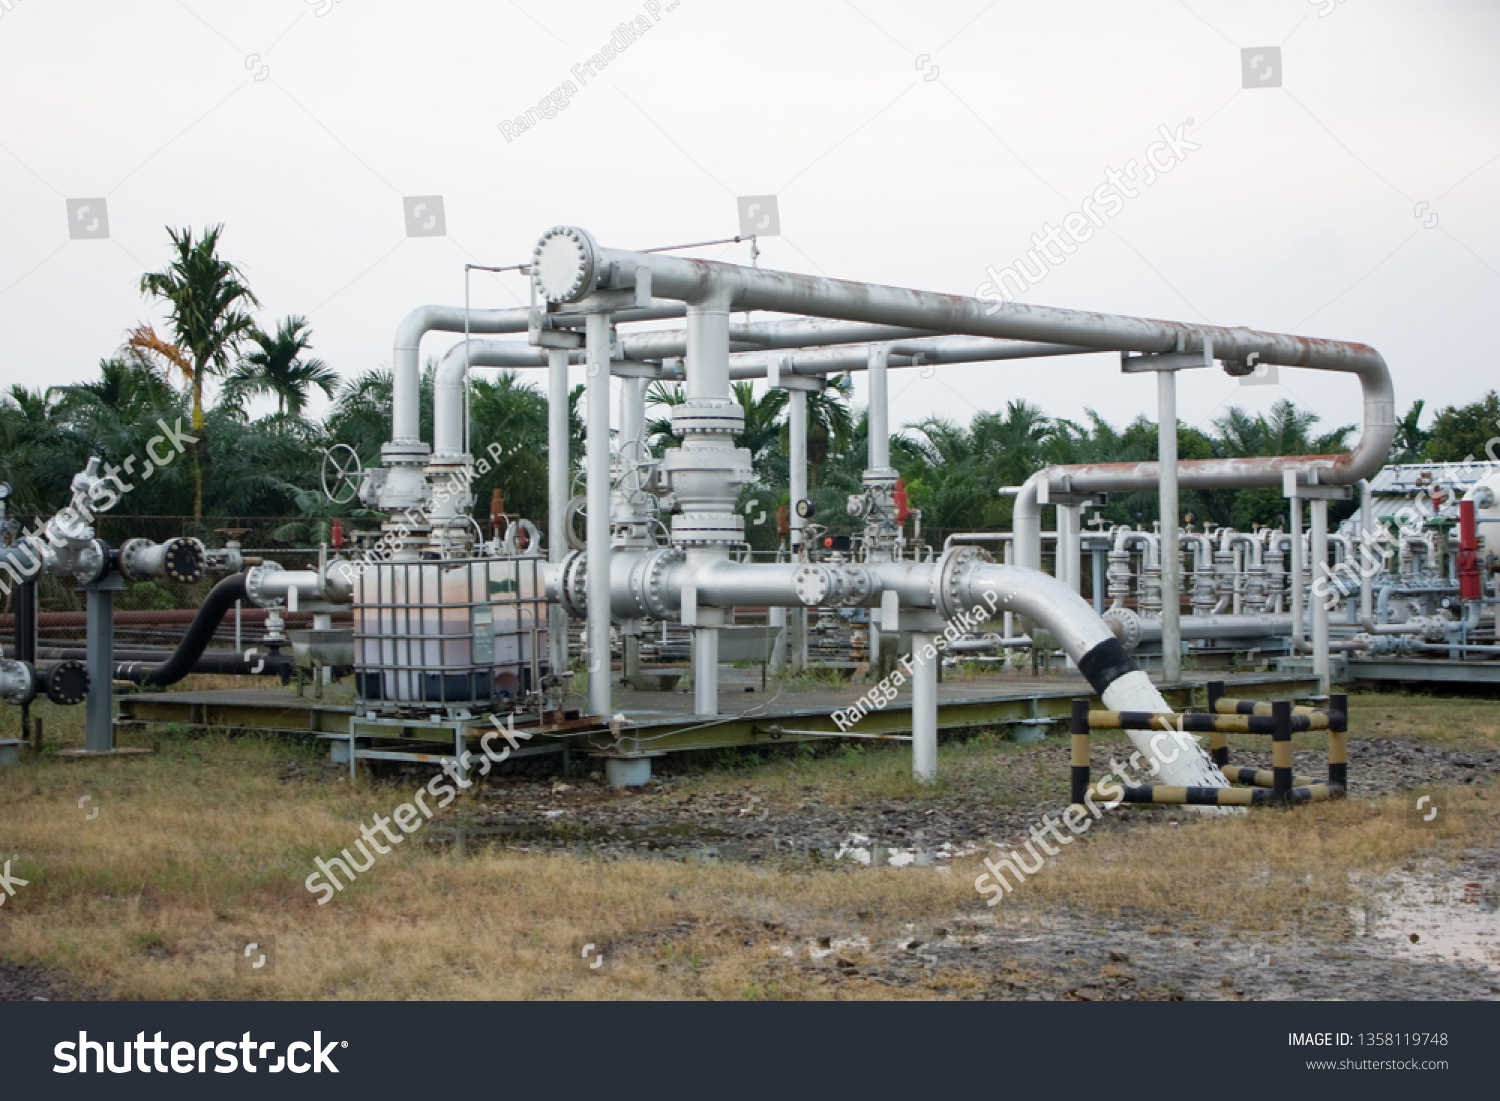 Pipeline oil and gas industry, LNG industry, and Geothermal industry #1358119748